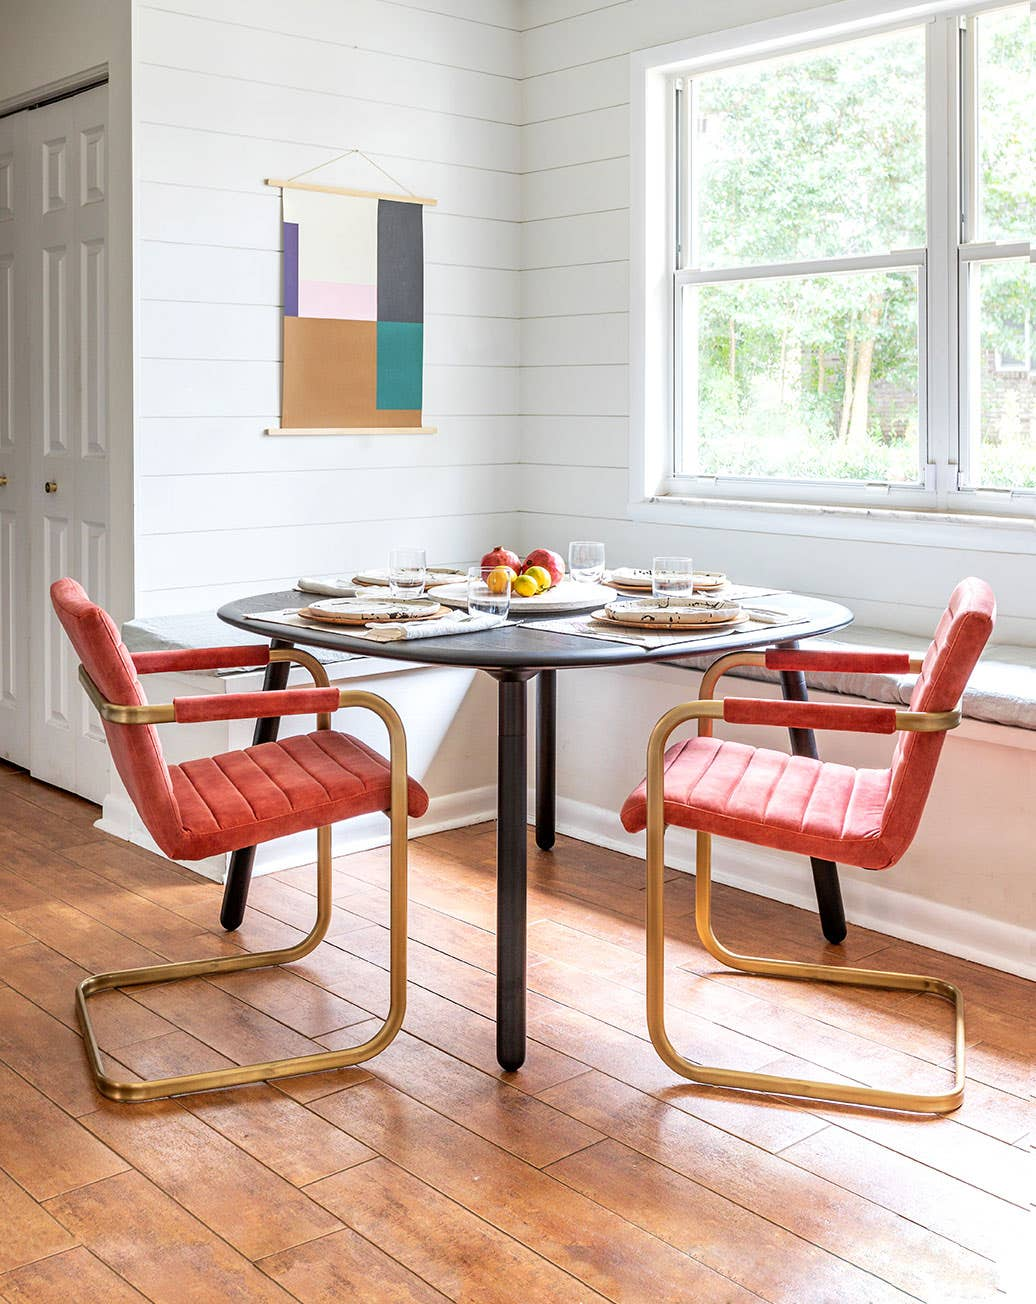 Two Sable Armchairs with brass frame and blush velvet upholstery at a breakfast table